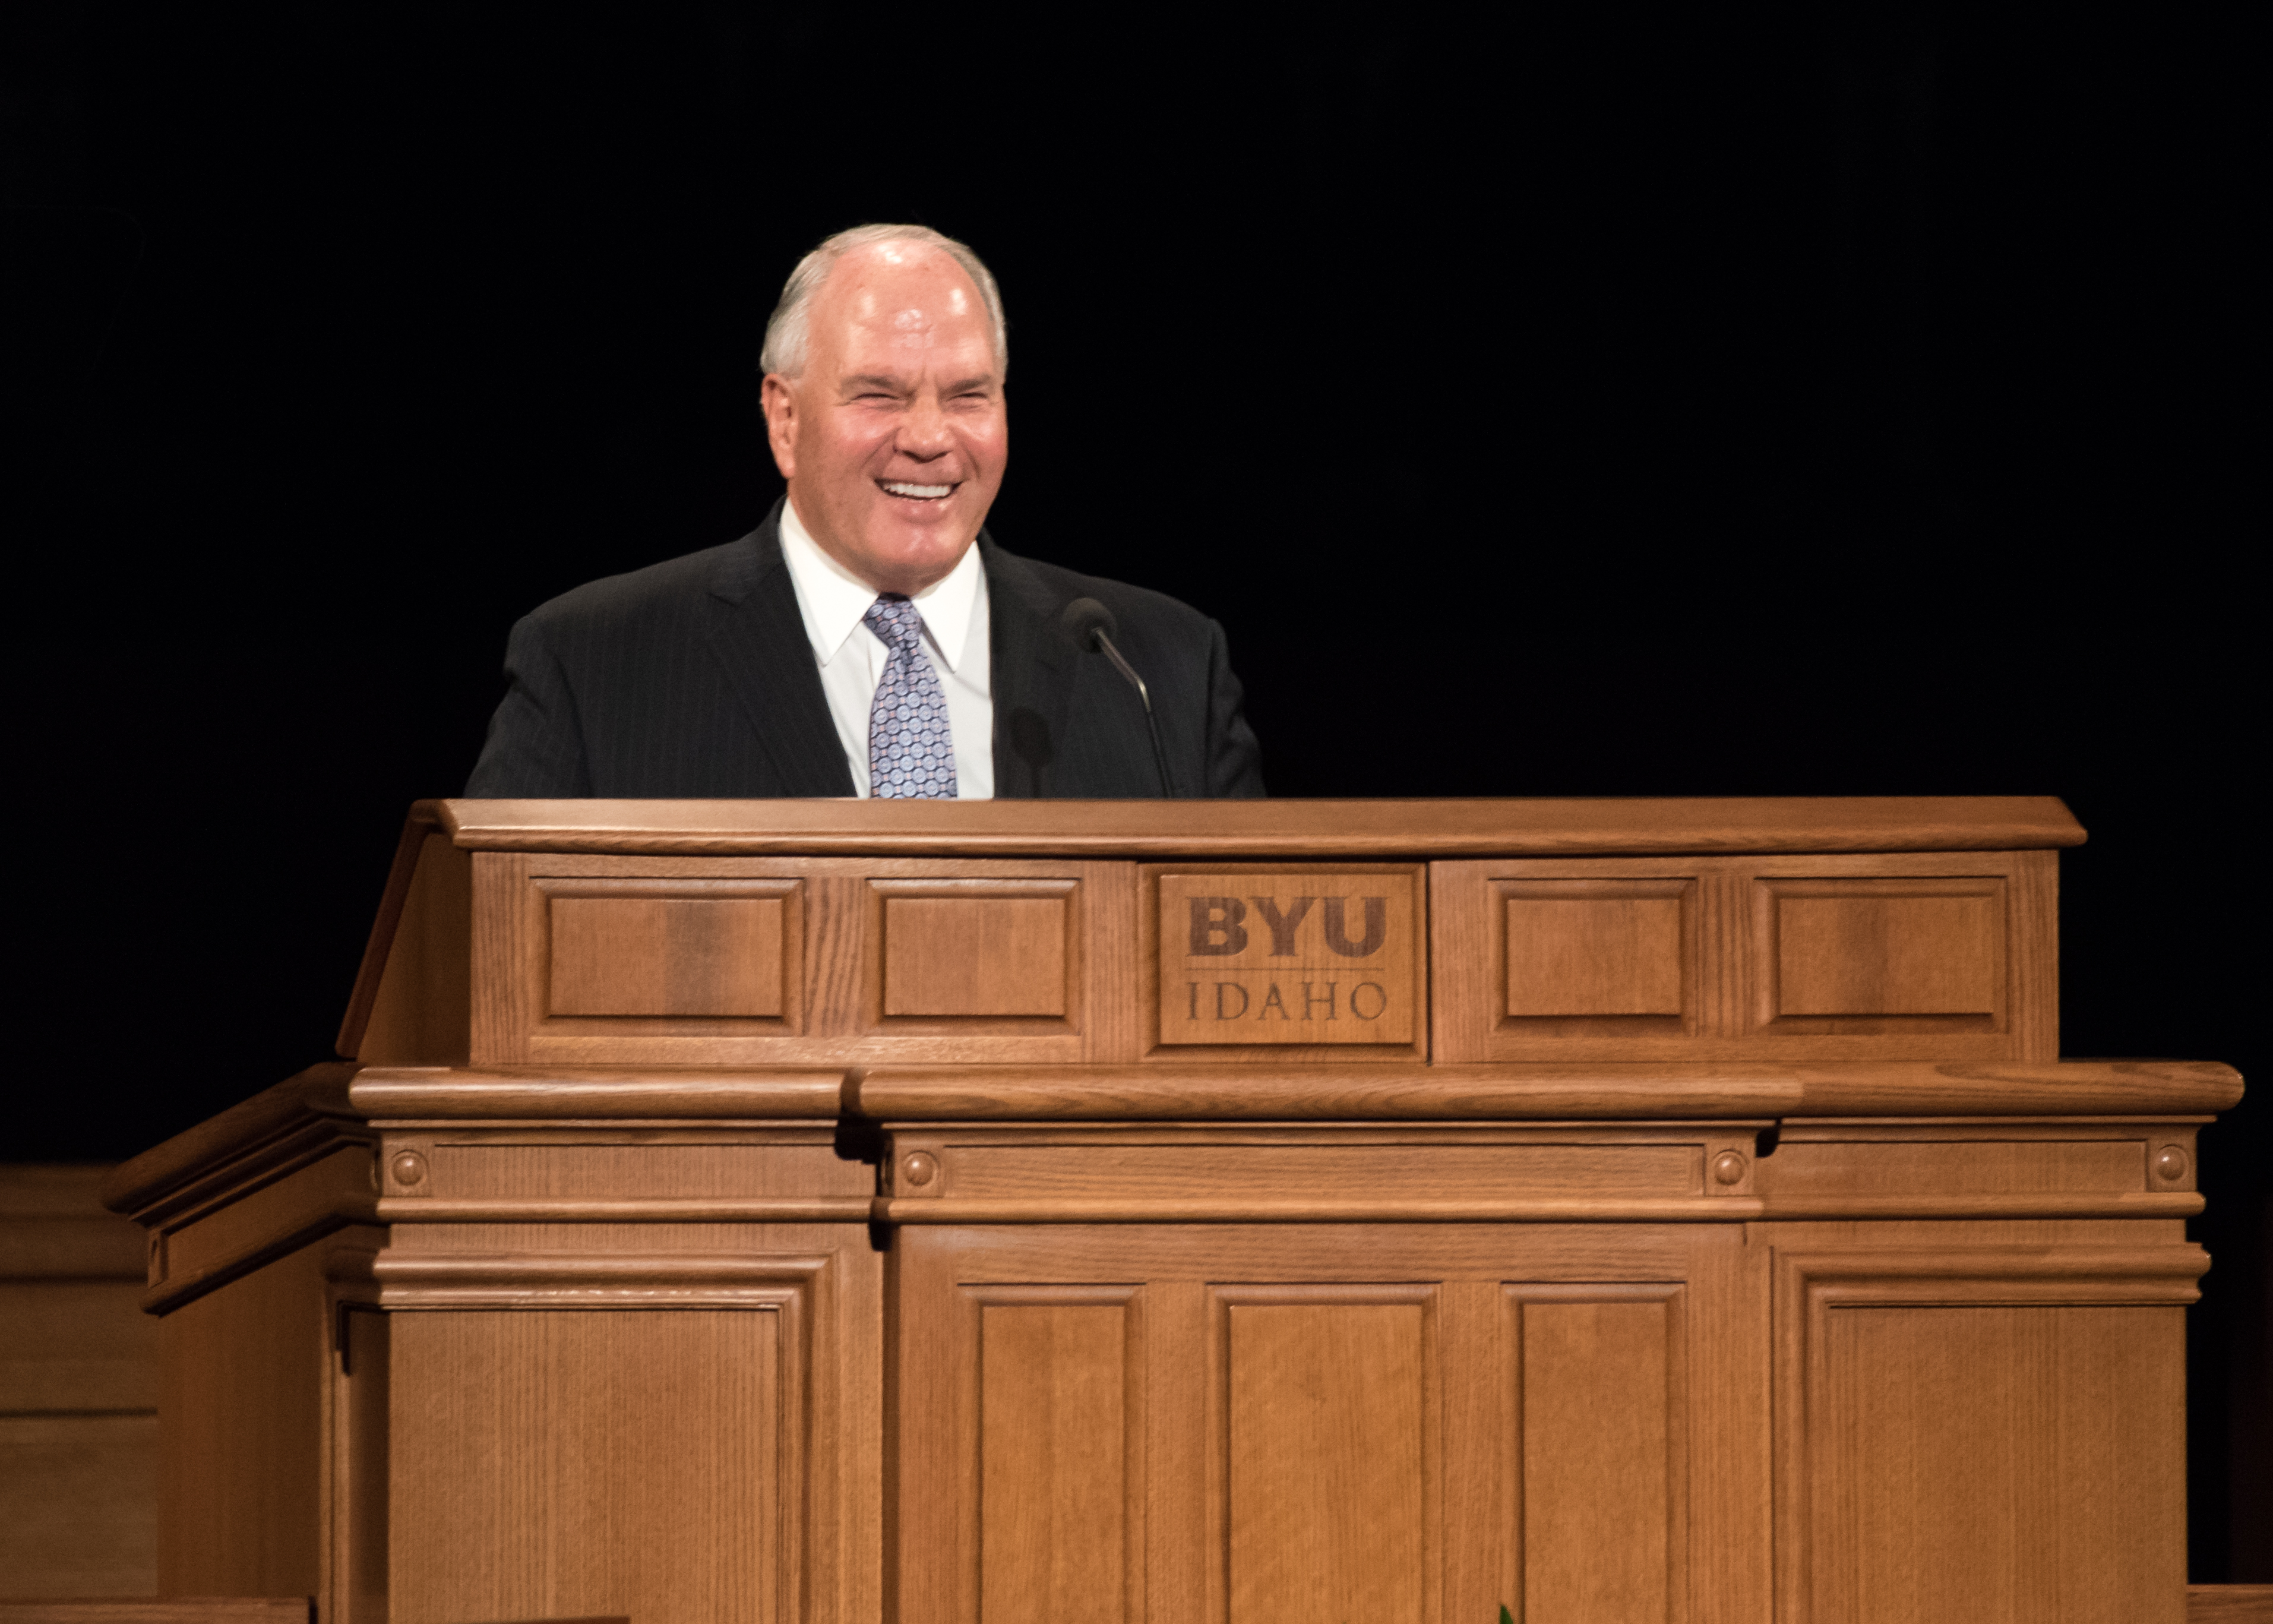 Elder Ronald A. Rasband of the Quorum of the Twelve Apostles speaks during a devotional held in the BYU-Idaho Center on April 28, 2019.